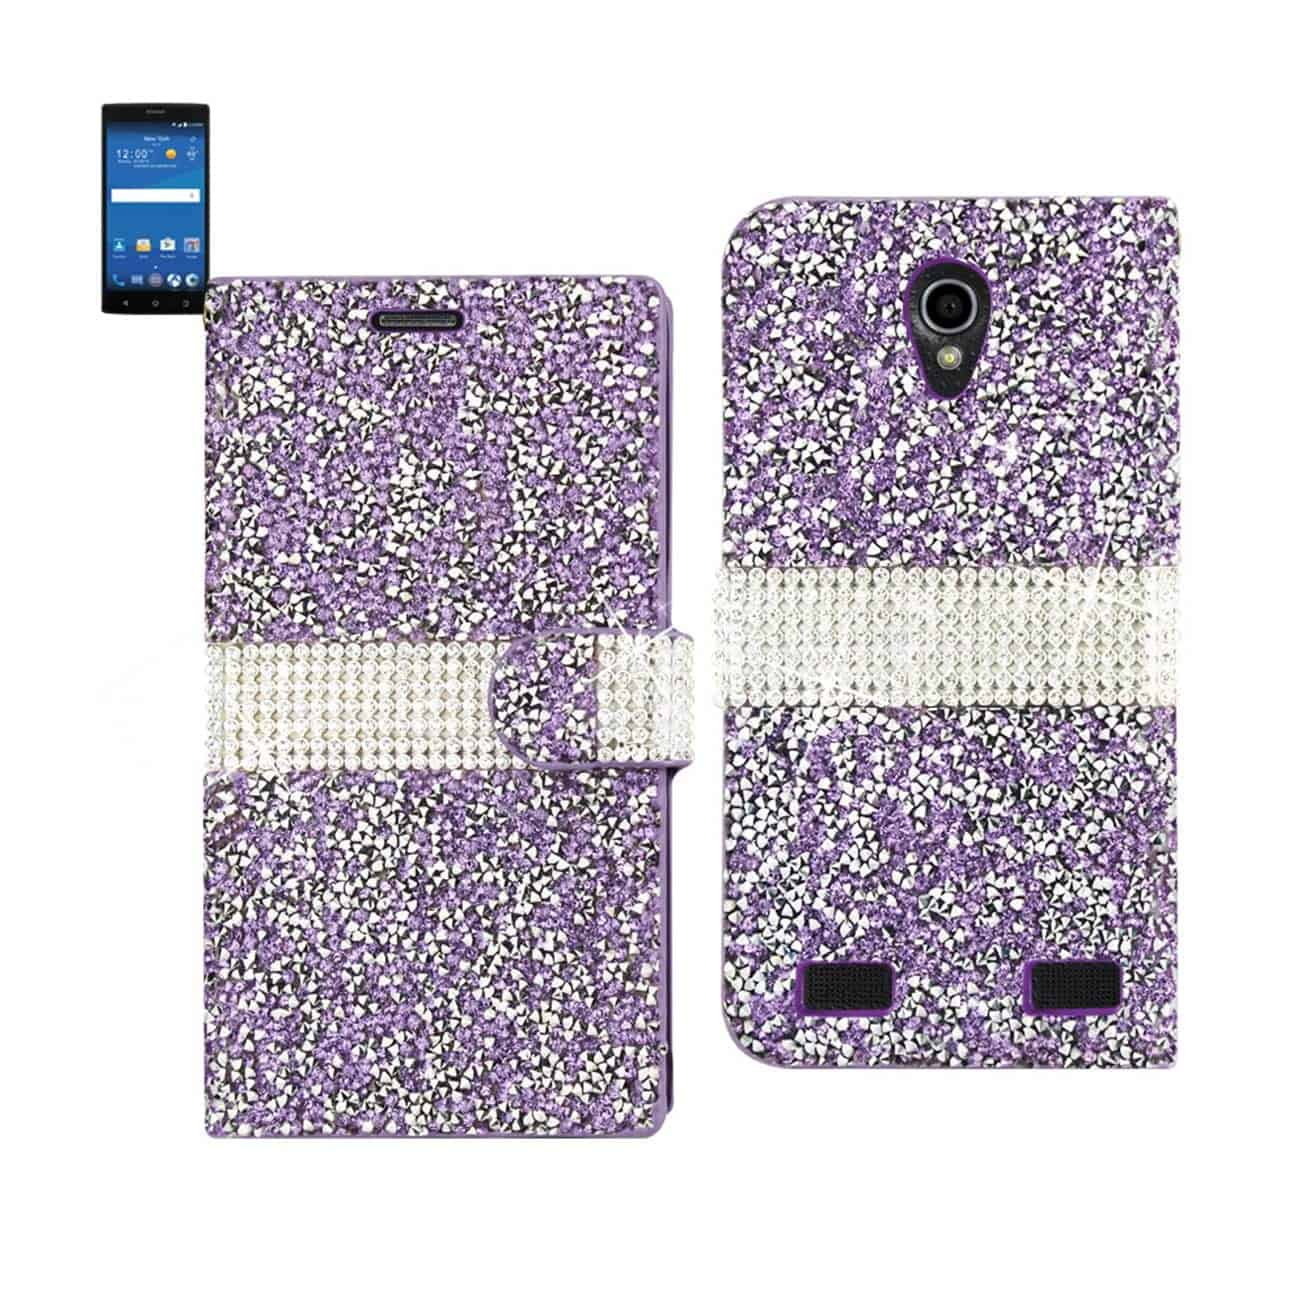 ZTE ZMAX 2 JEWELRY RHINESTONE WALLET CASE IN PURPLE